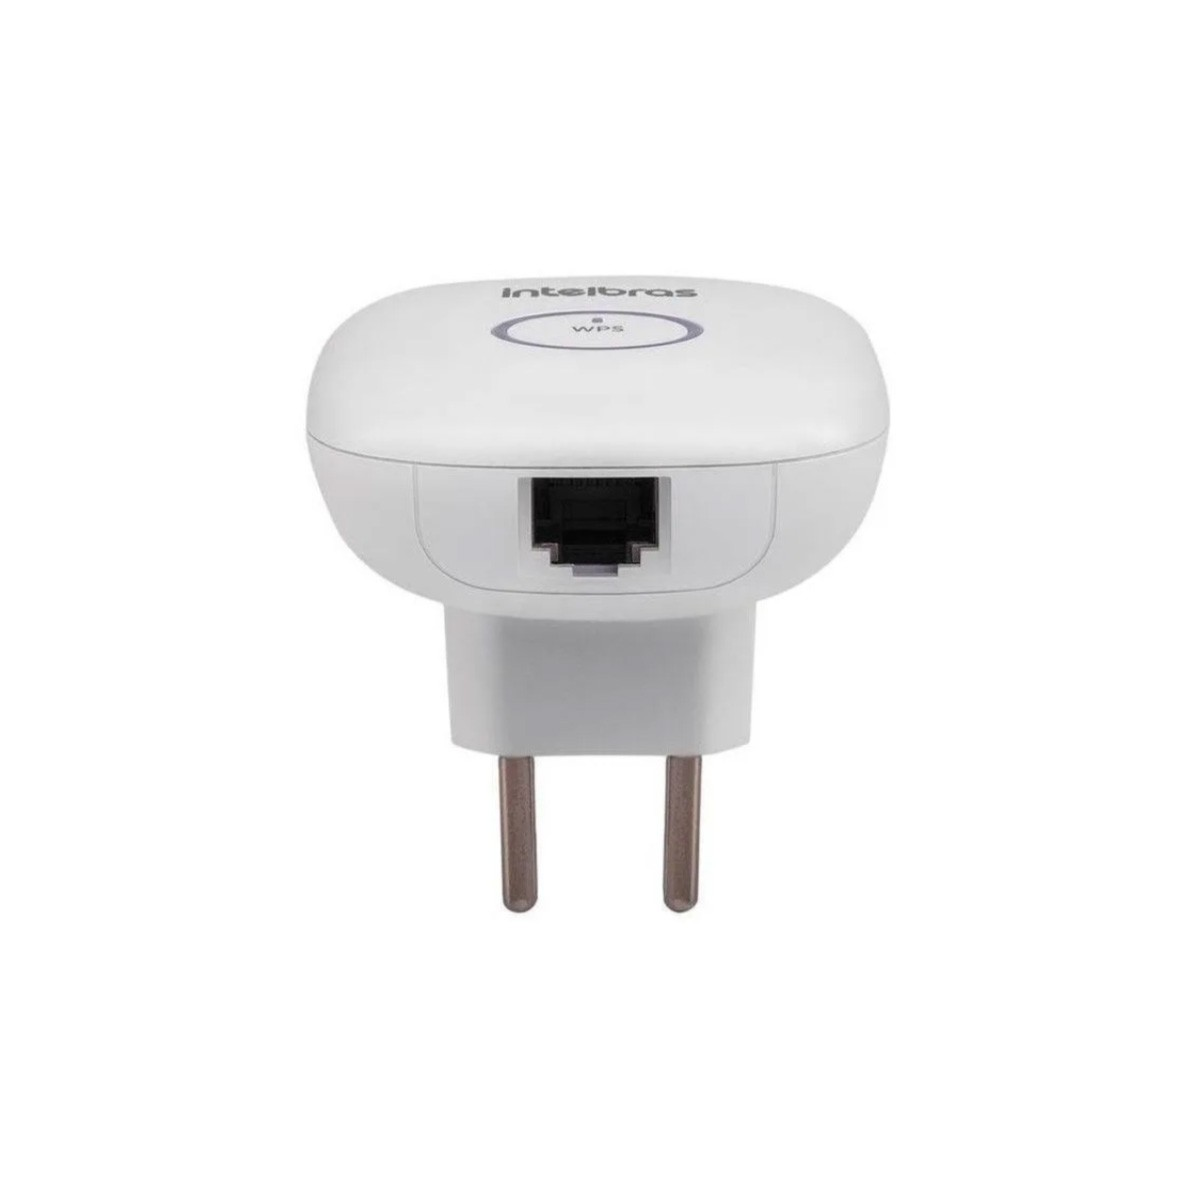 Repetidor, Access point Intelbras IWE 3000N branco 100V/240V